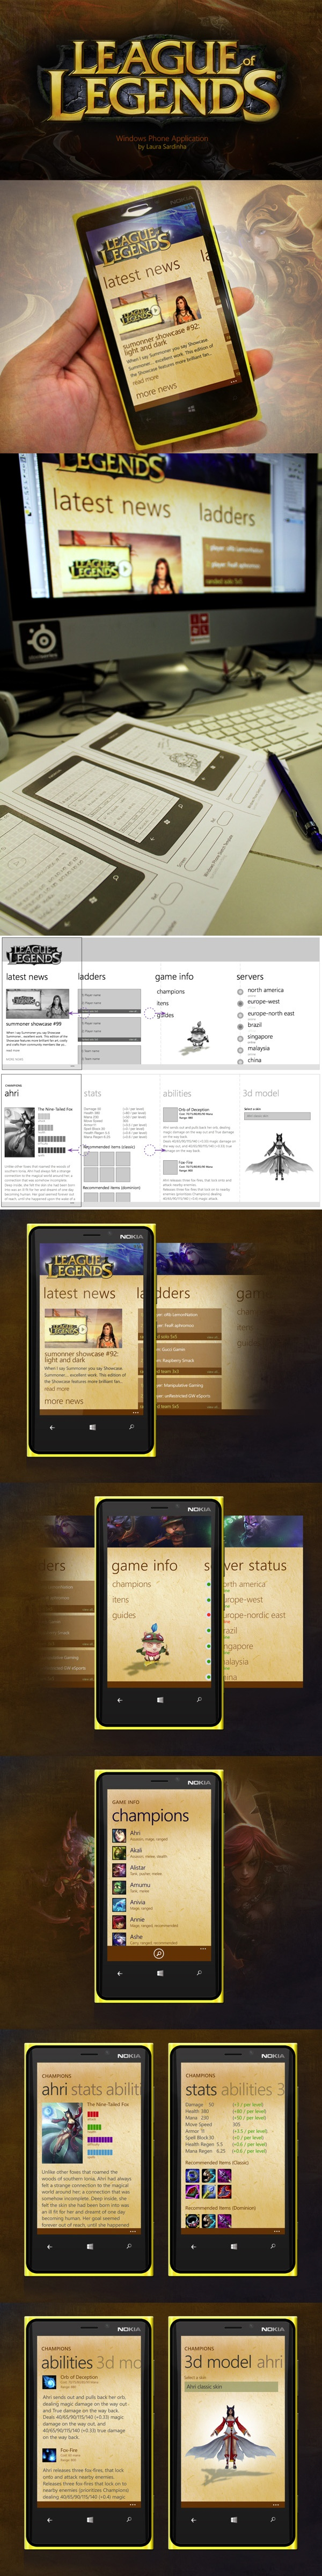 League of Legends Windows Phone Application by Laura Sardinha, via Behance  ***  League of Legends is a game that I'm currently playing and loving. I was wondering why there is no mobile applications for the game with some news, champions details and etc. Because of that I made the concept of this Windows Phone application, from initial sketches, interaction design to visual design.